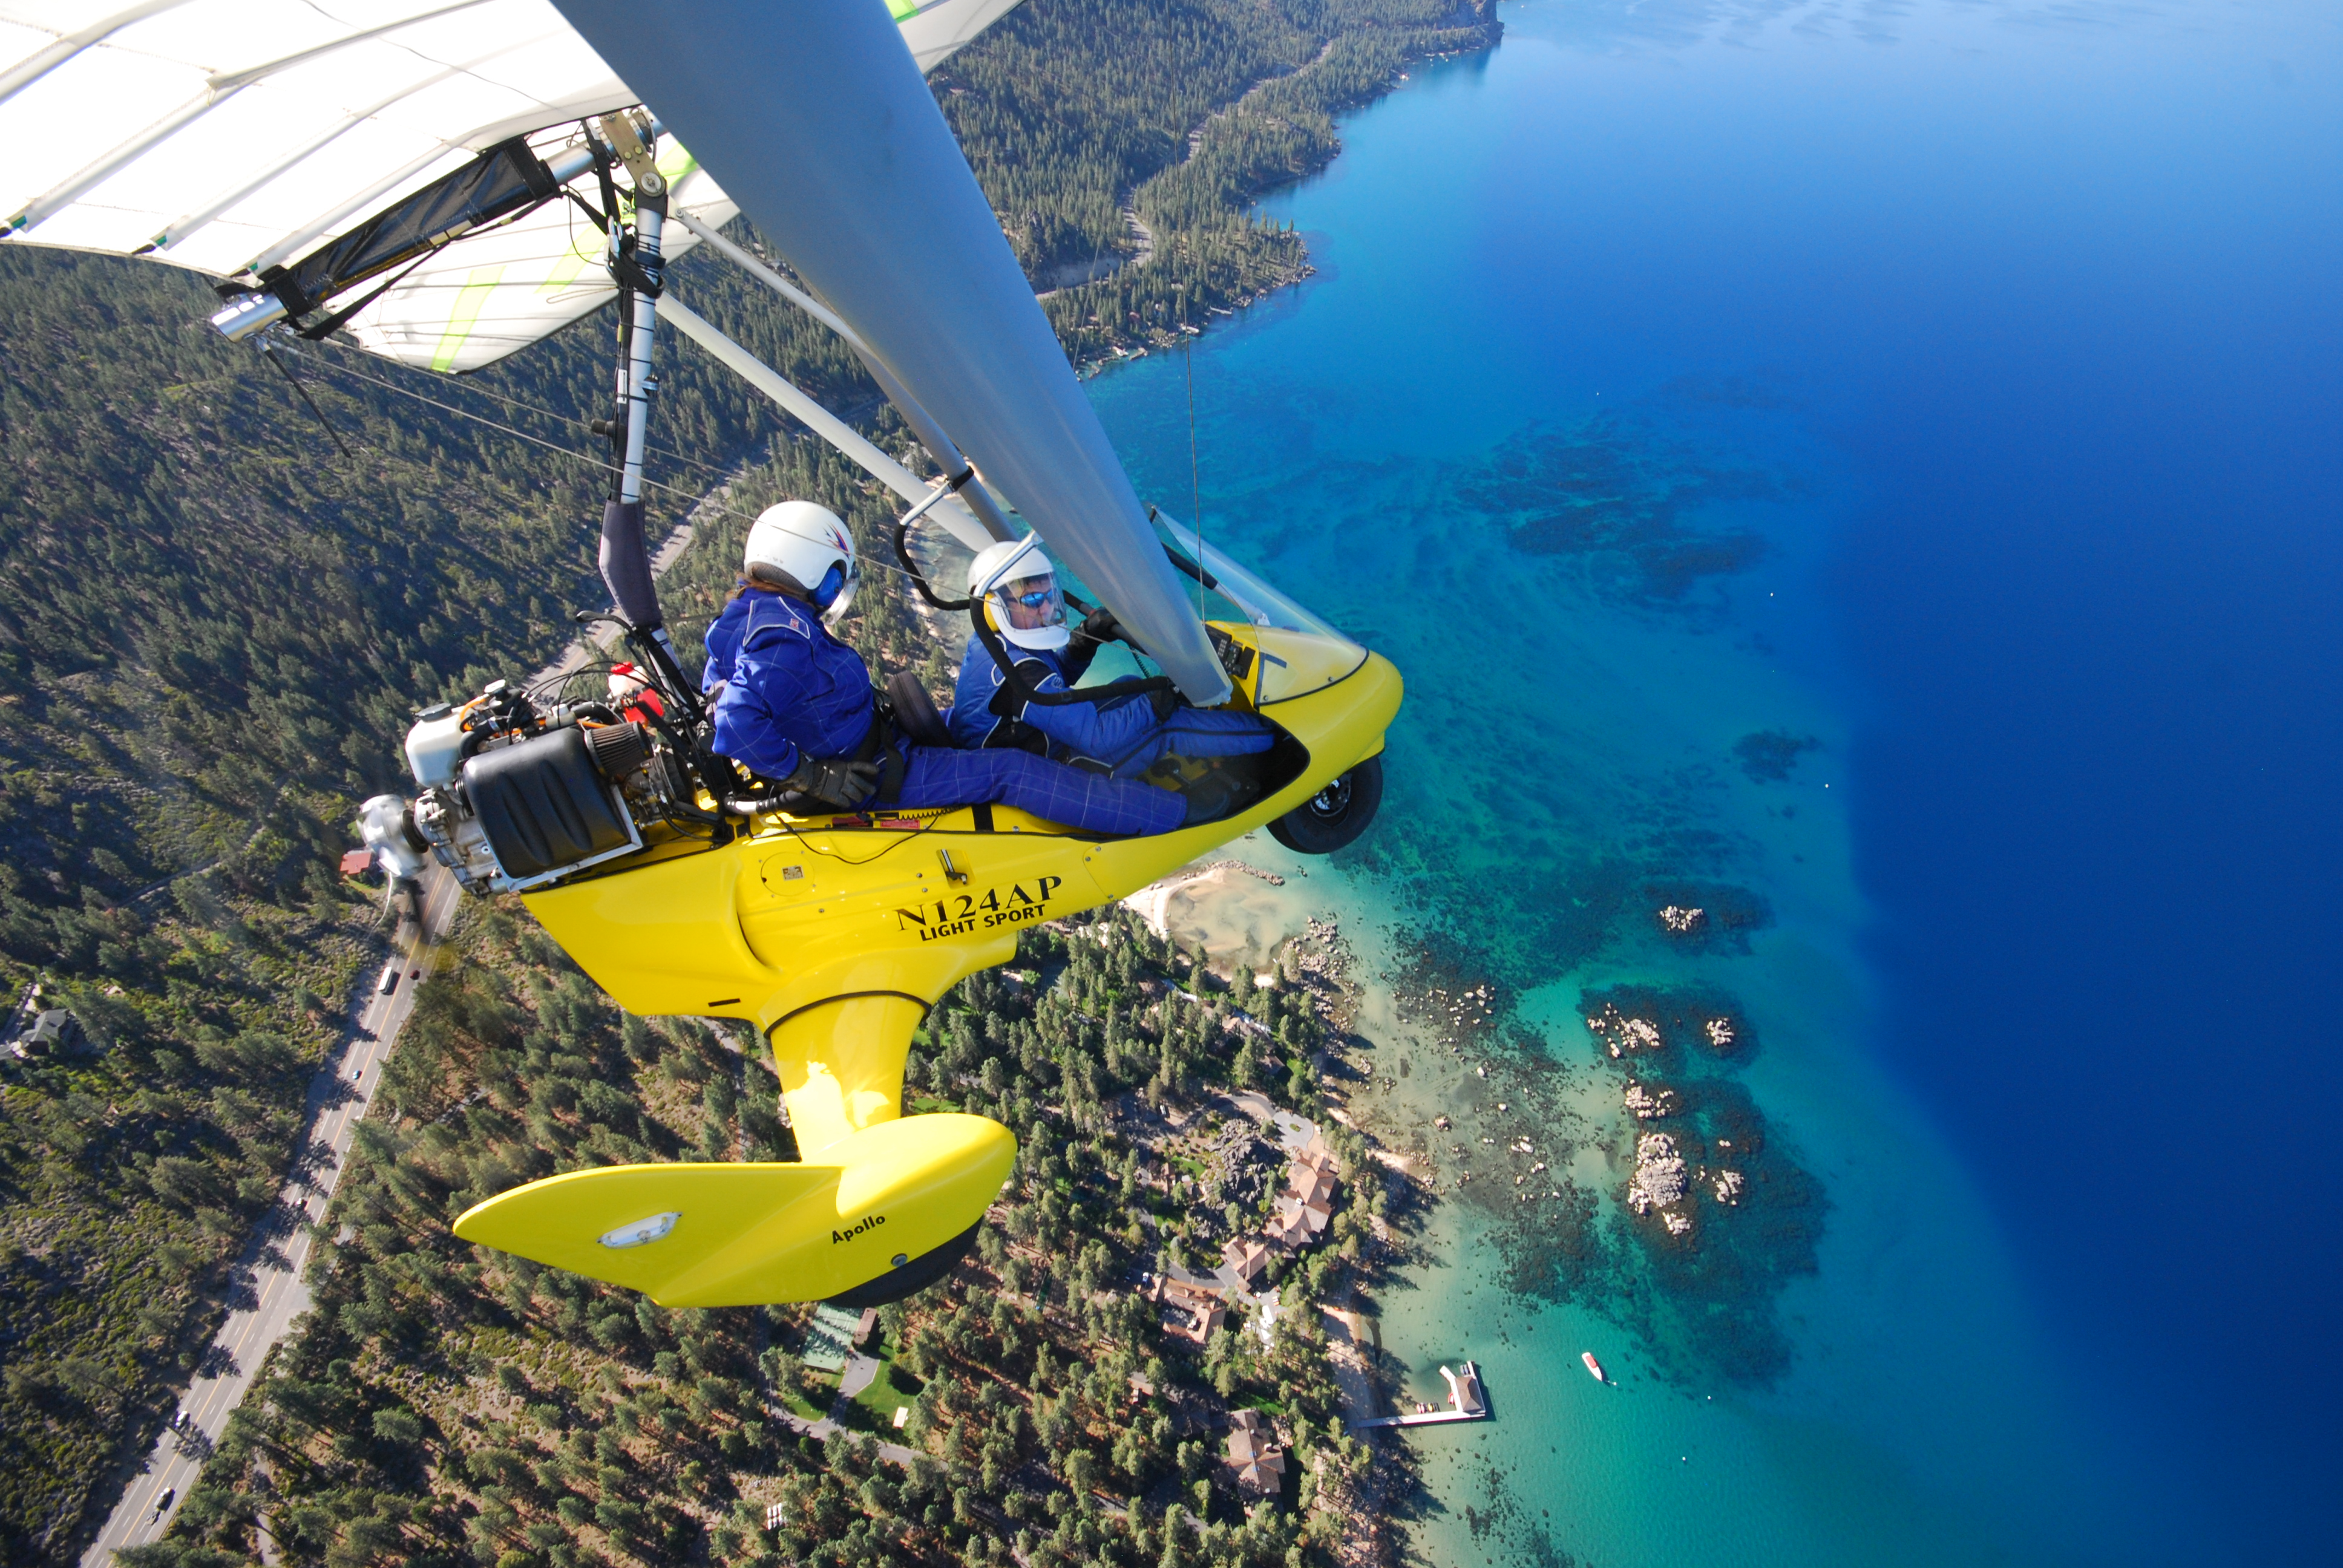 Powered hang gliding above West Shore, Lake Tahoe